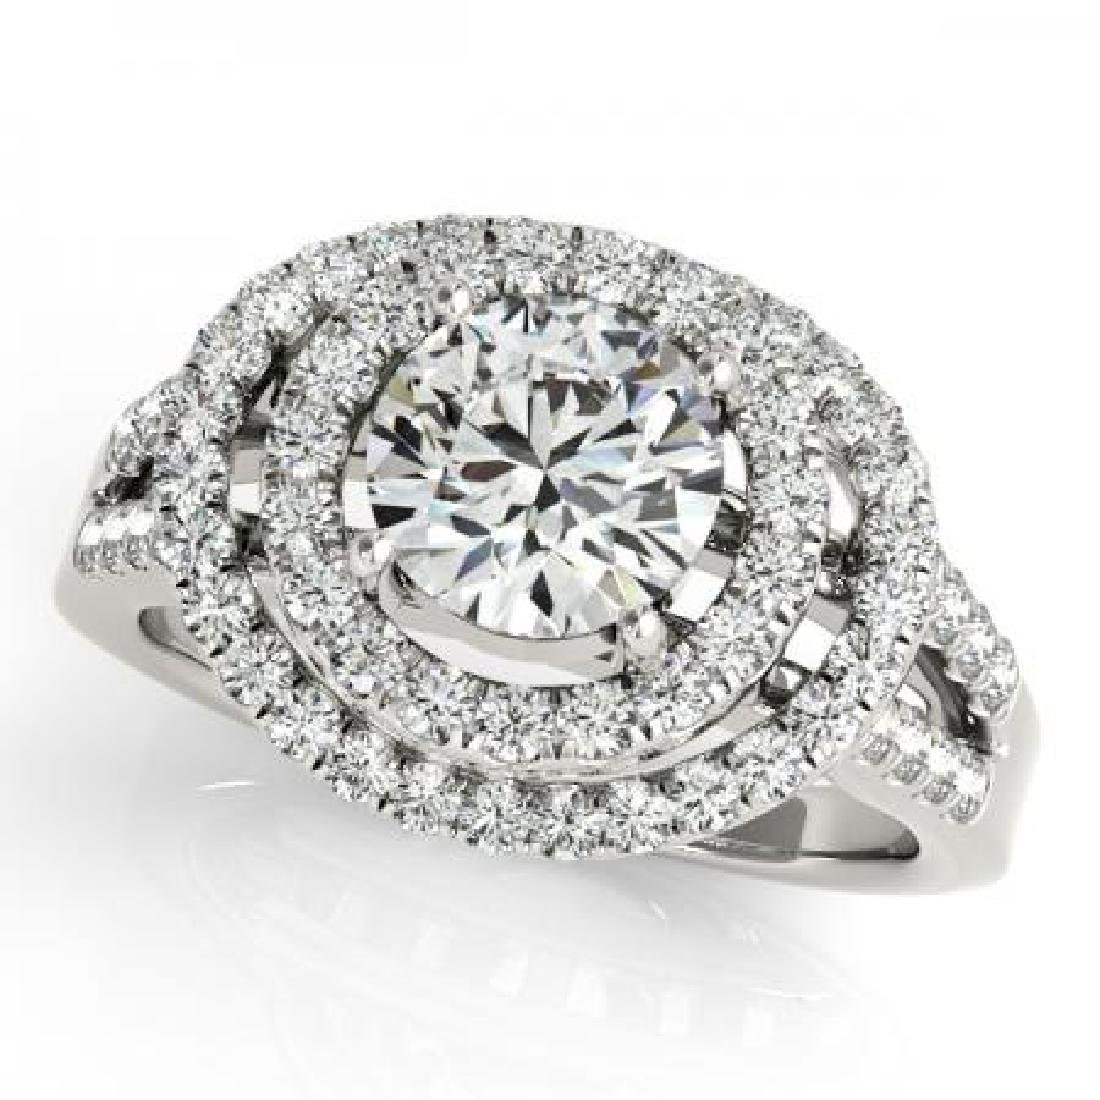 CERTIFIED PLATINUM 1.55 CT G-H/VS-SI1 DIAMOND HALO ENGA